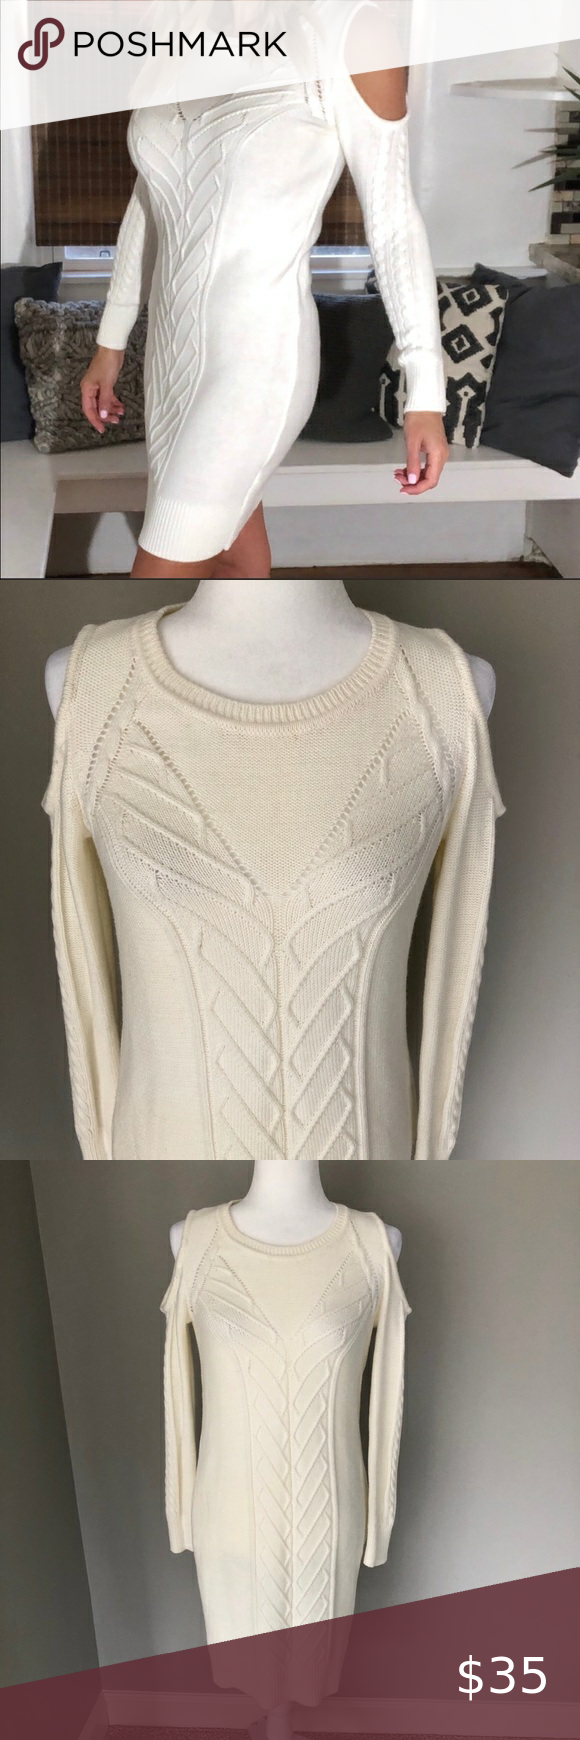 Banana republic cold shoulder sweater dress in 2020 Cold